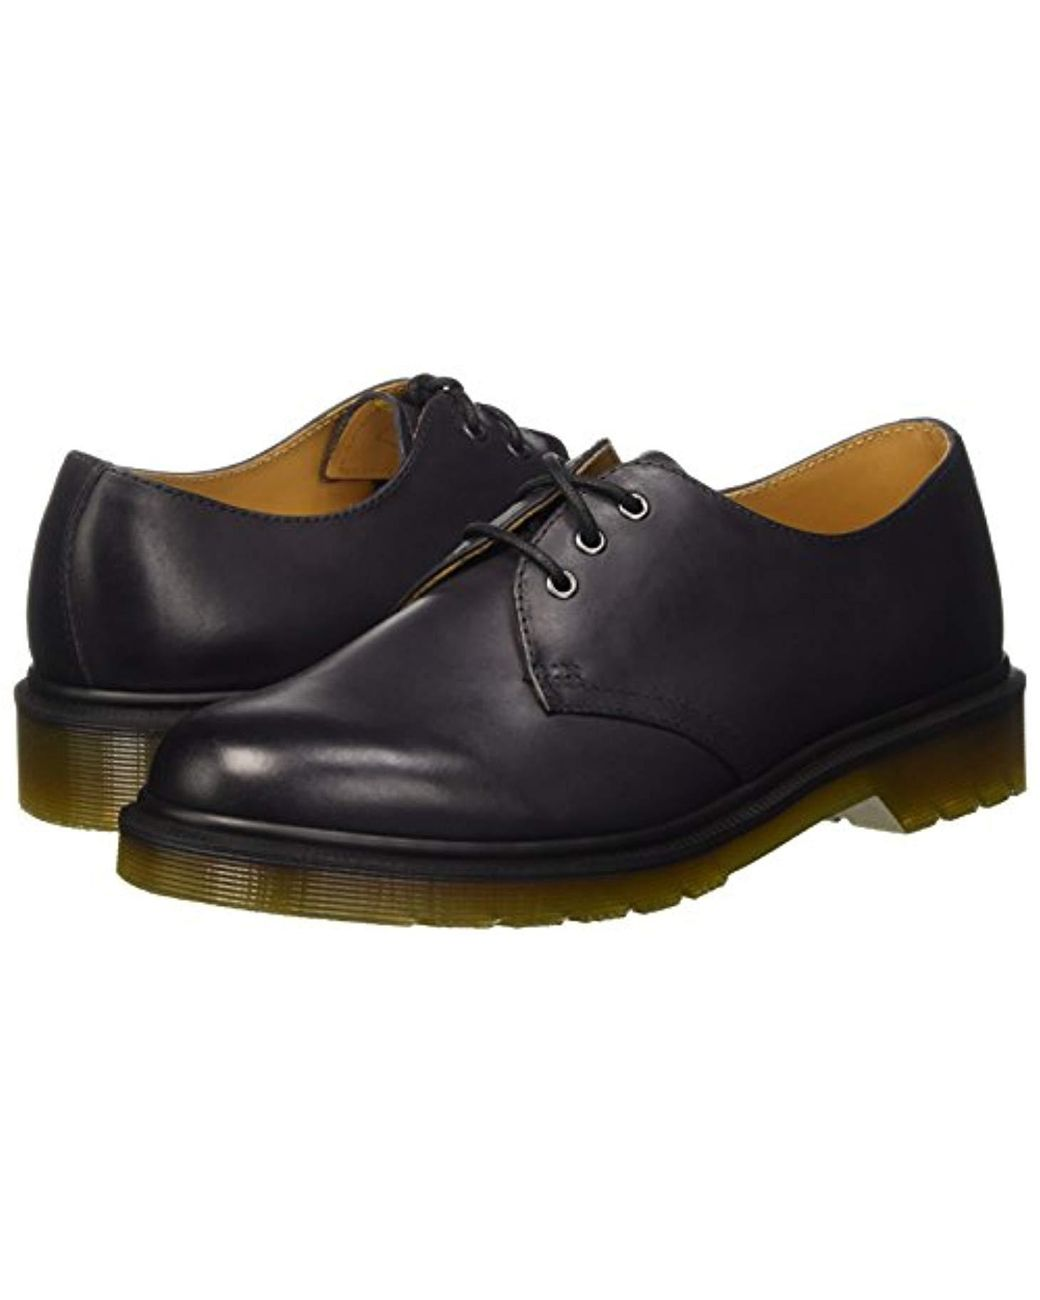 59a00368645 Dr. Martens Unisex Adults  1461 Charcoal Antique Temperley Derbys in Black  for Men - Lyst